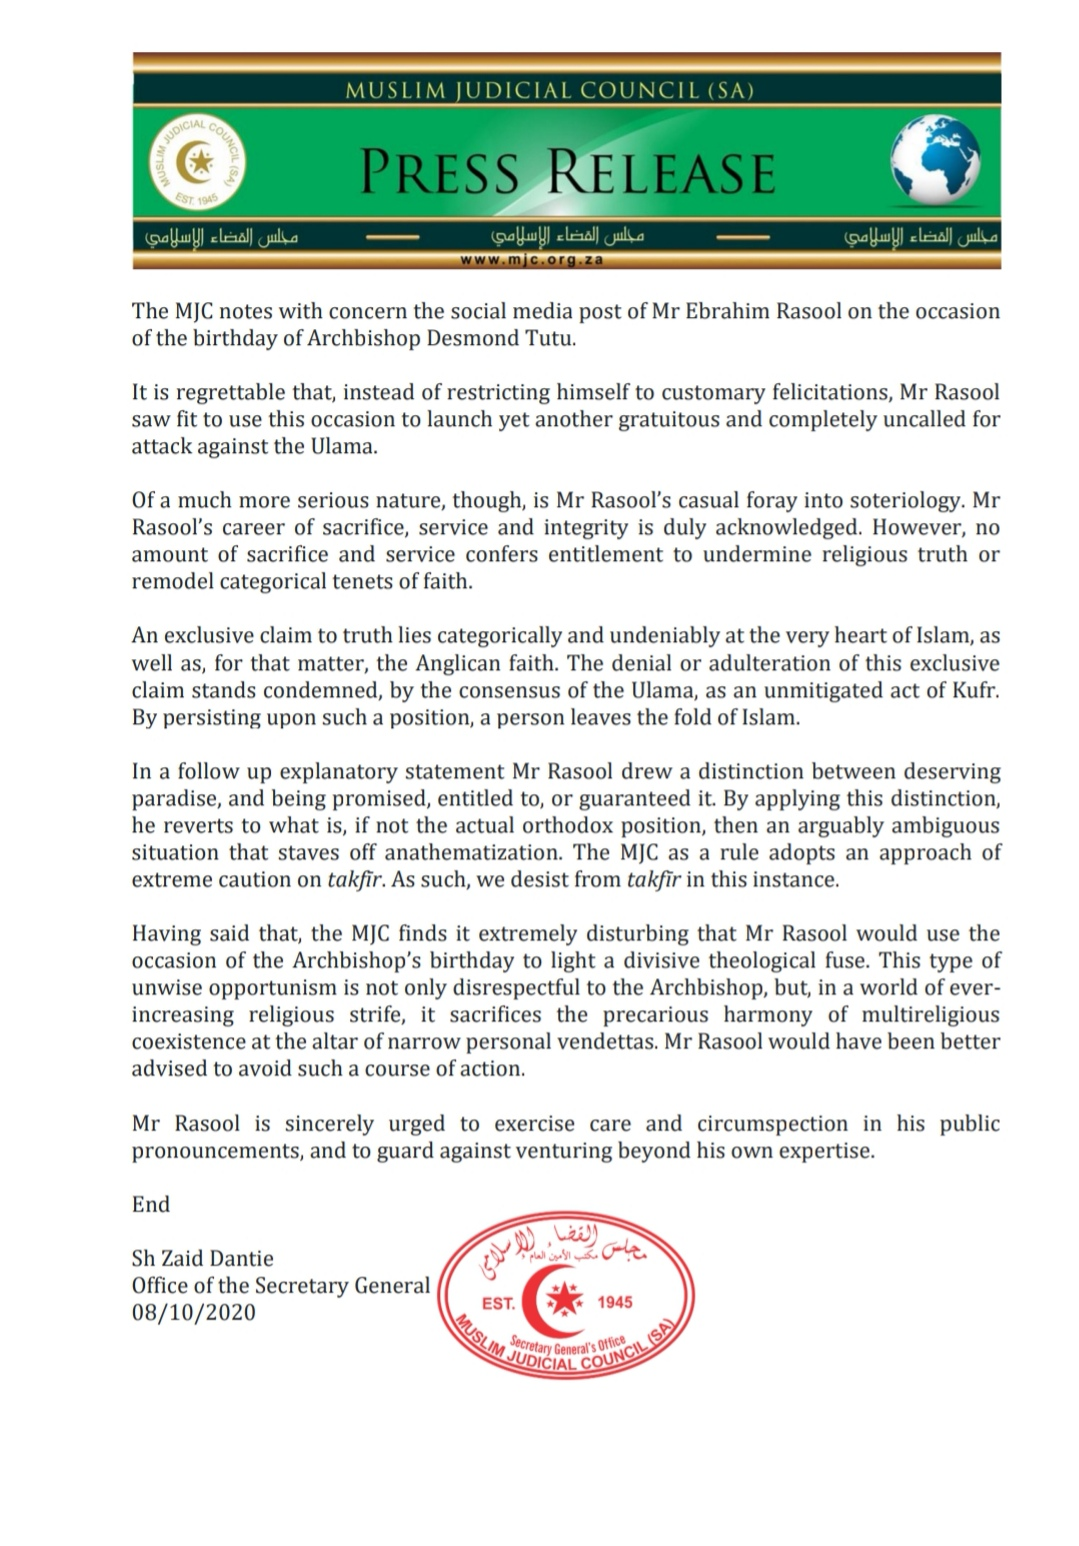 - rasool - MJC (SA) Statement regarding Mr Ebrahim Rasool's Social Media Faux Pas